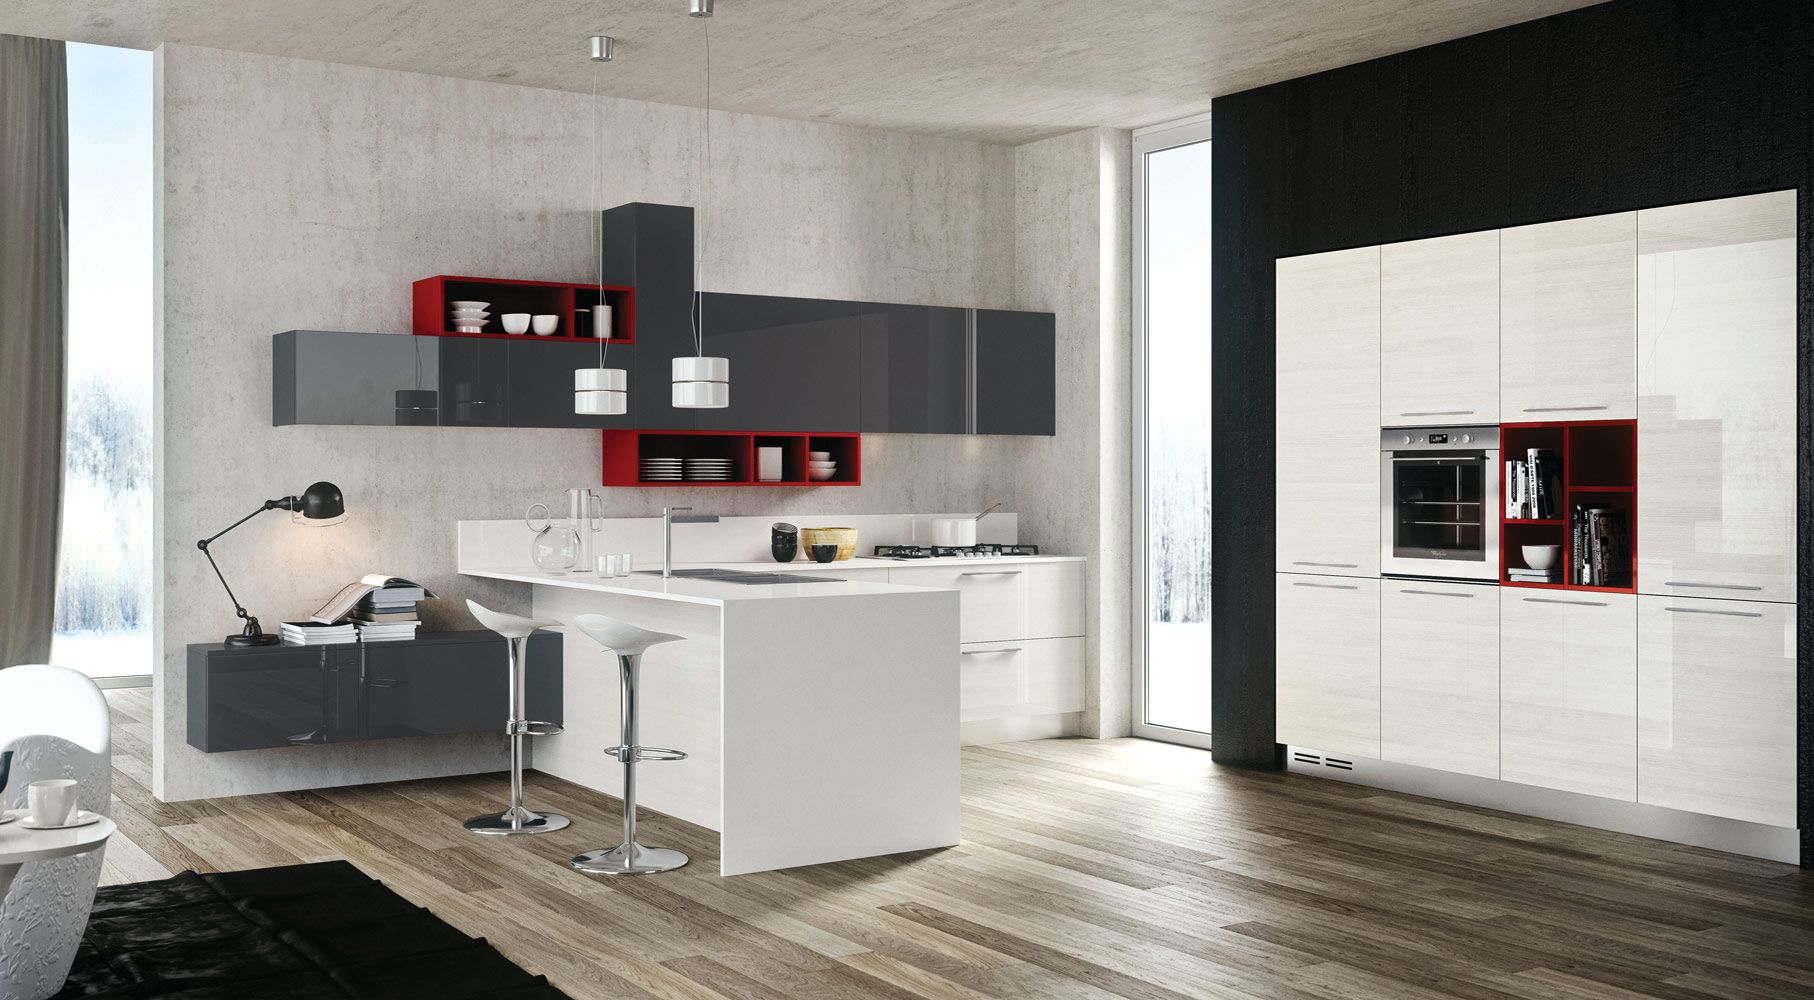 Kitchen:Charming Kitchen Design Ideas With Gray White Cabinets Also Red  Open Shelves Also White Kitchen Table And Bar Stools With Table Lamp And  Black ...